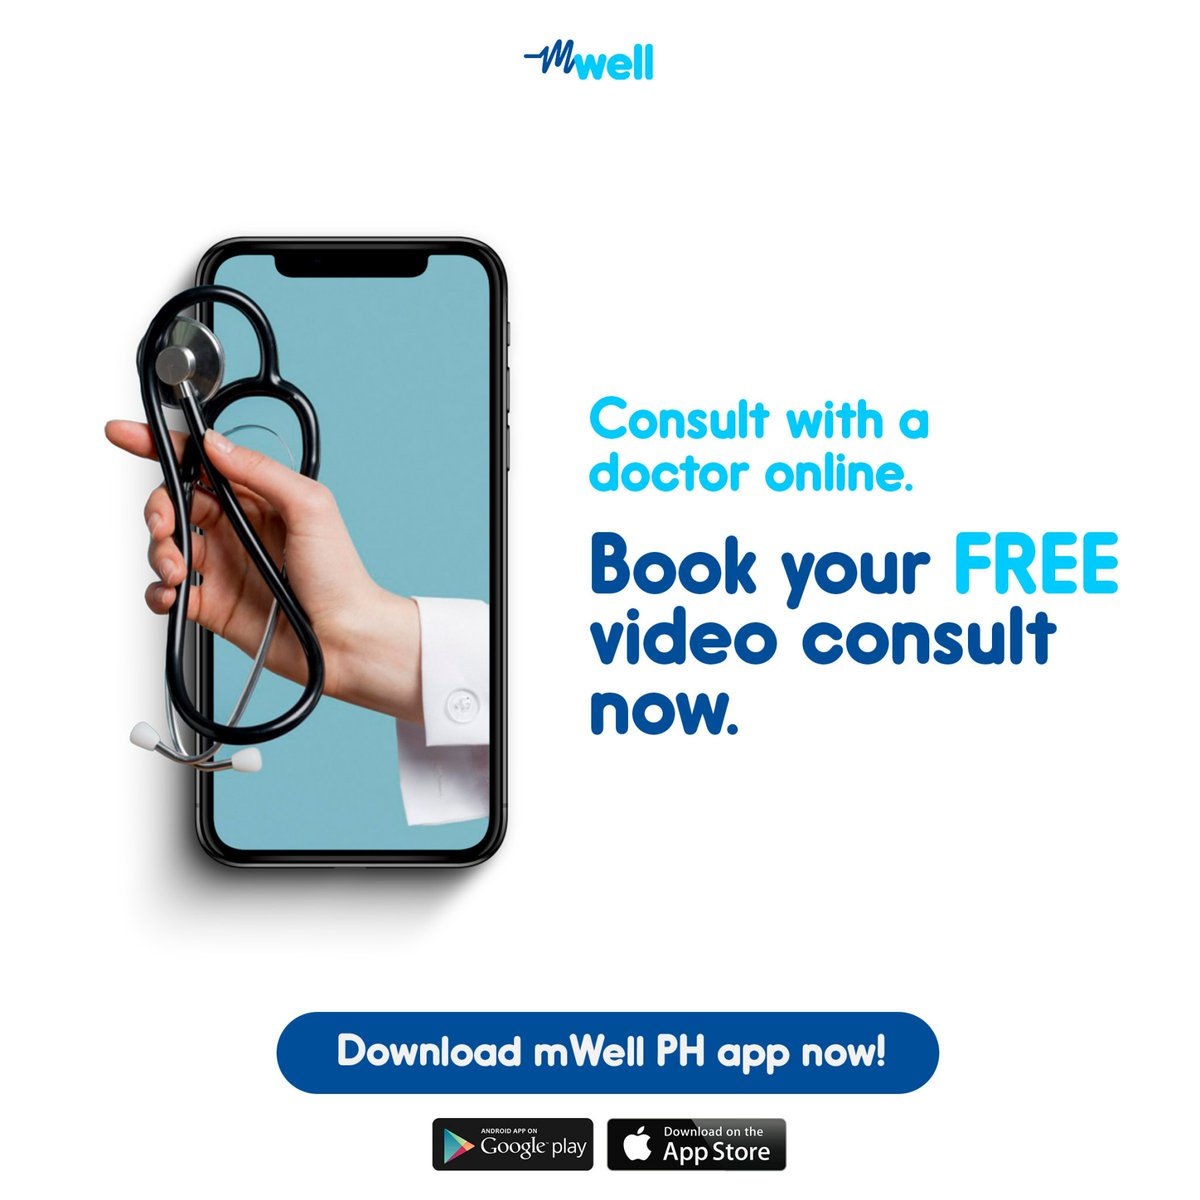 These days, it doesn't hurt to be sure. Have your health checked by a doctor for your peace of mind.  Book your FREE* video consult, download the mWell PH app today for expert health and wellness advice anytime, anywhere.   *Doctors with 0.00 fees on the app are free of charge https://t.co/wq7zEzdnRR